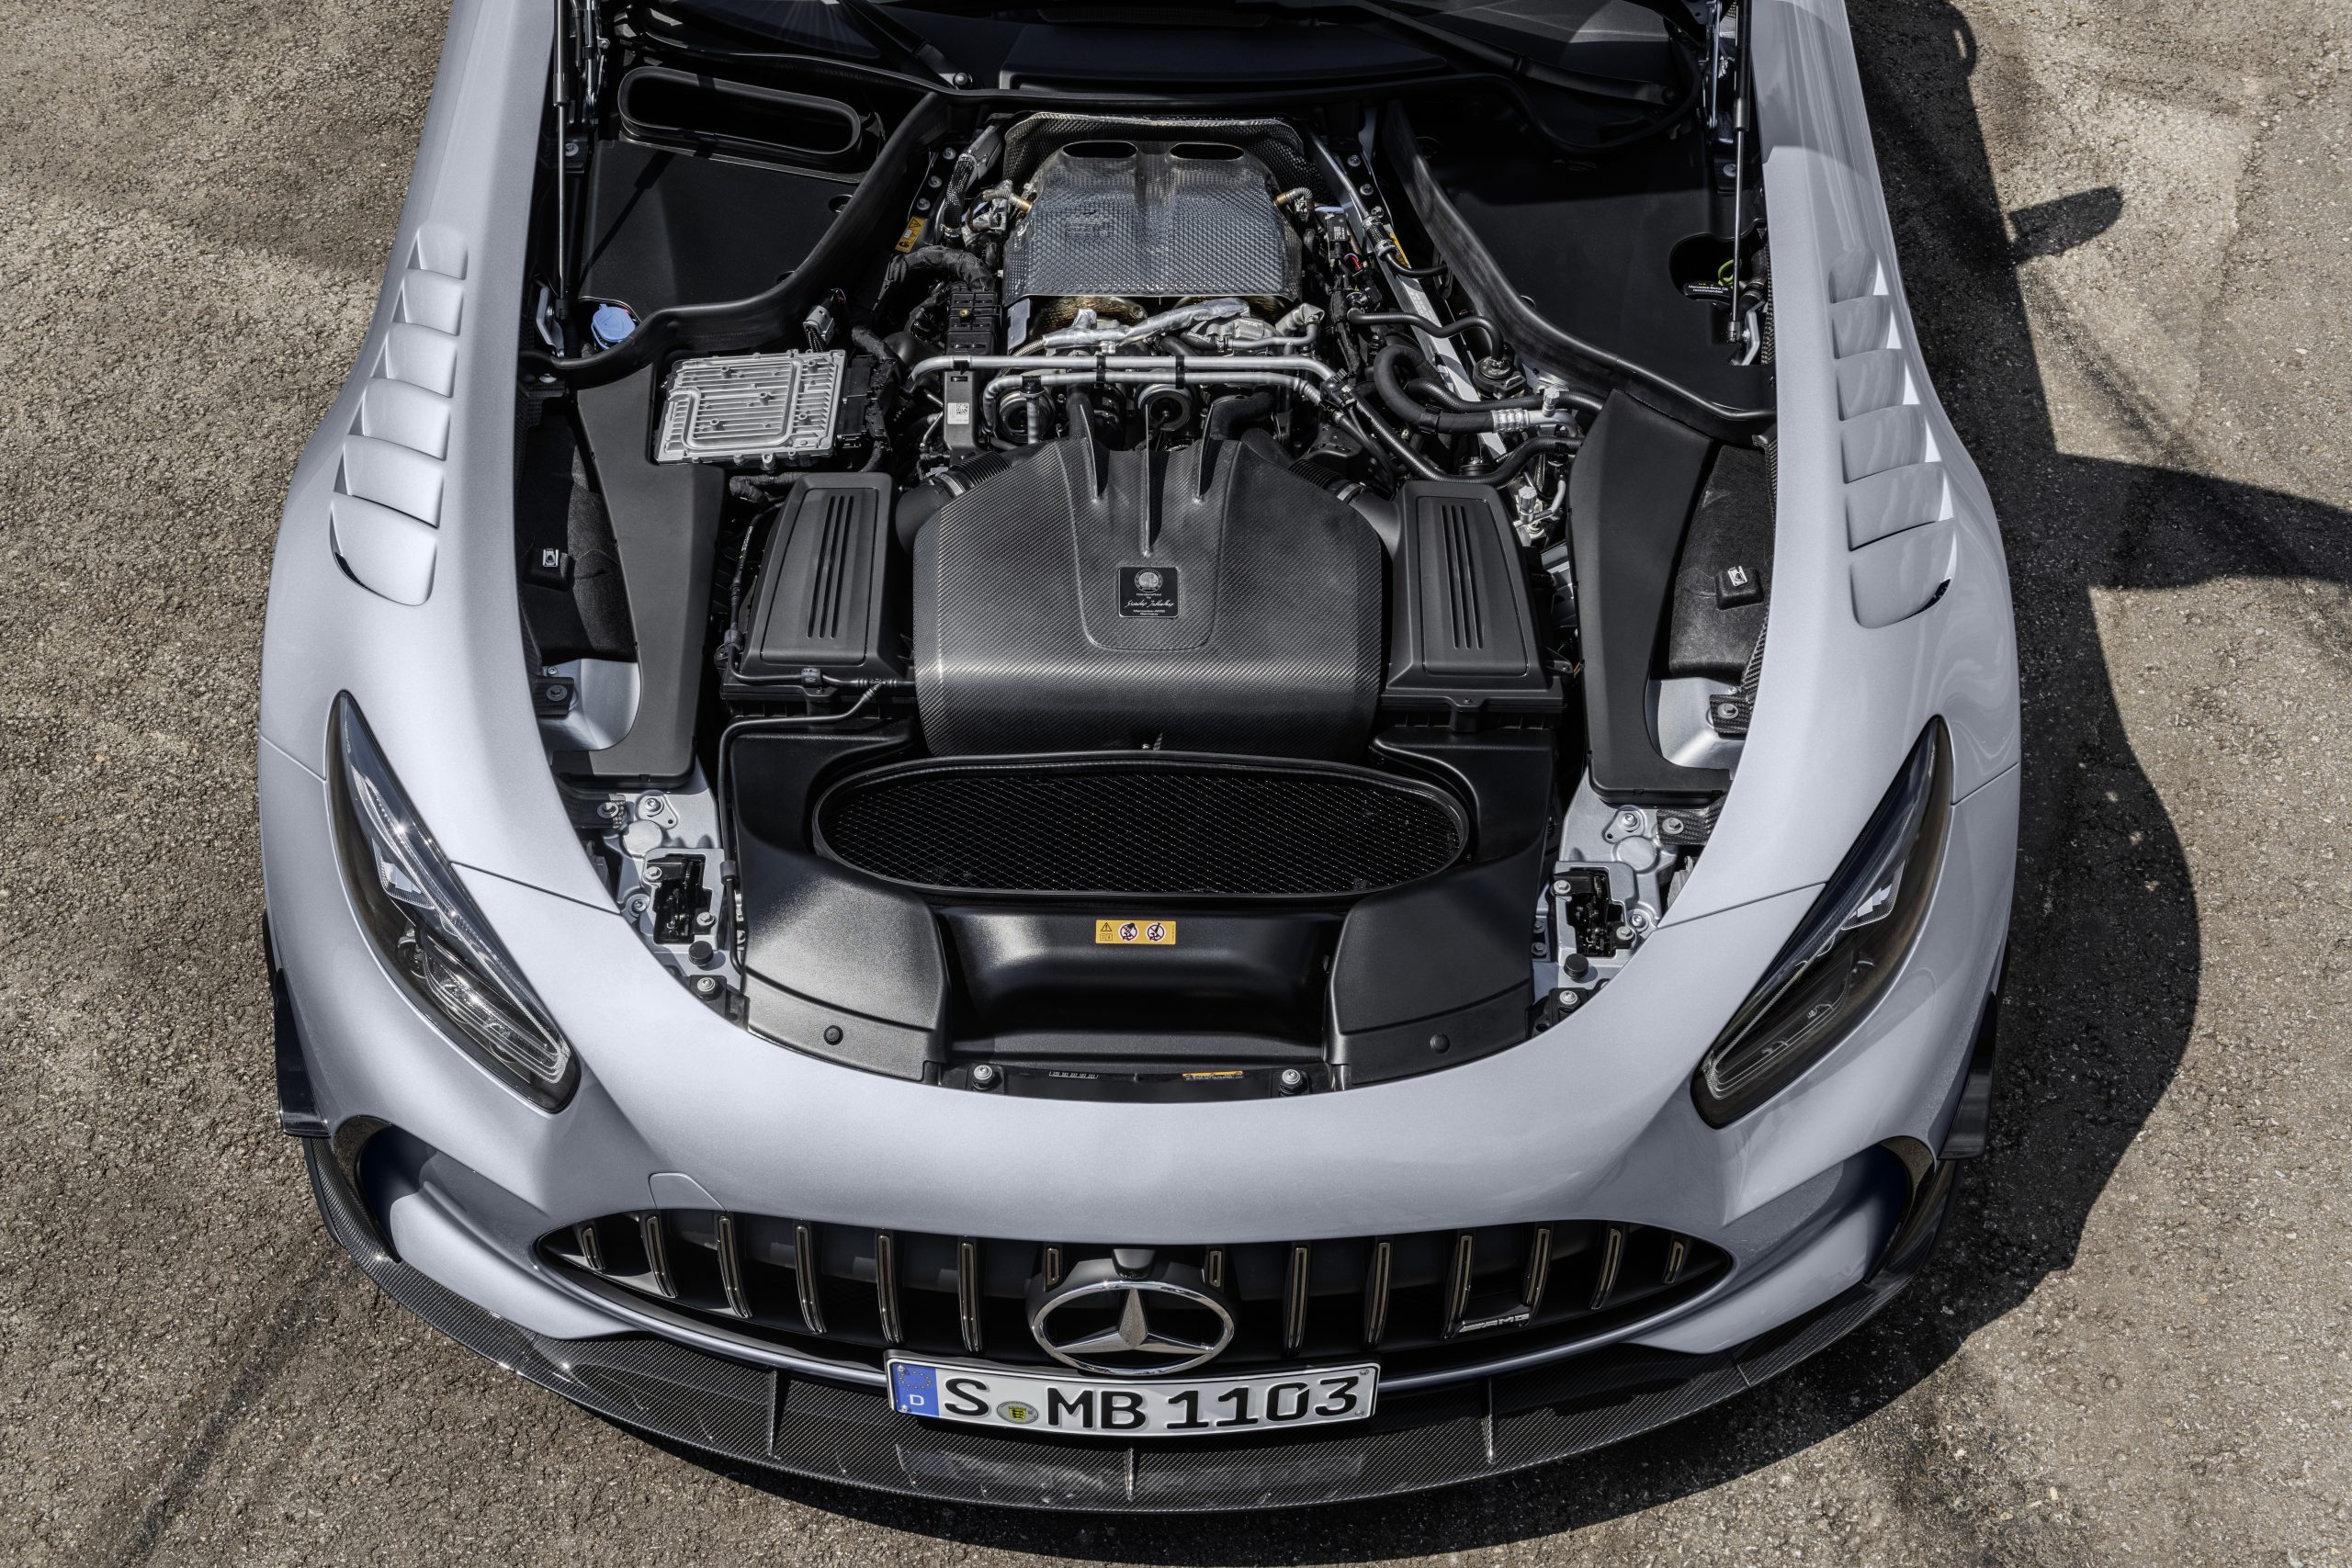 Mercedes-AMG GT Black Series Engine